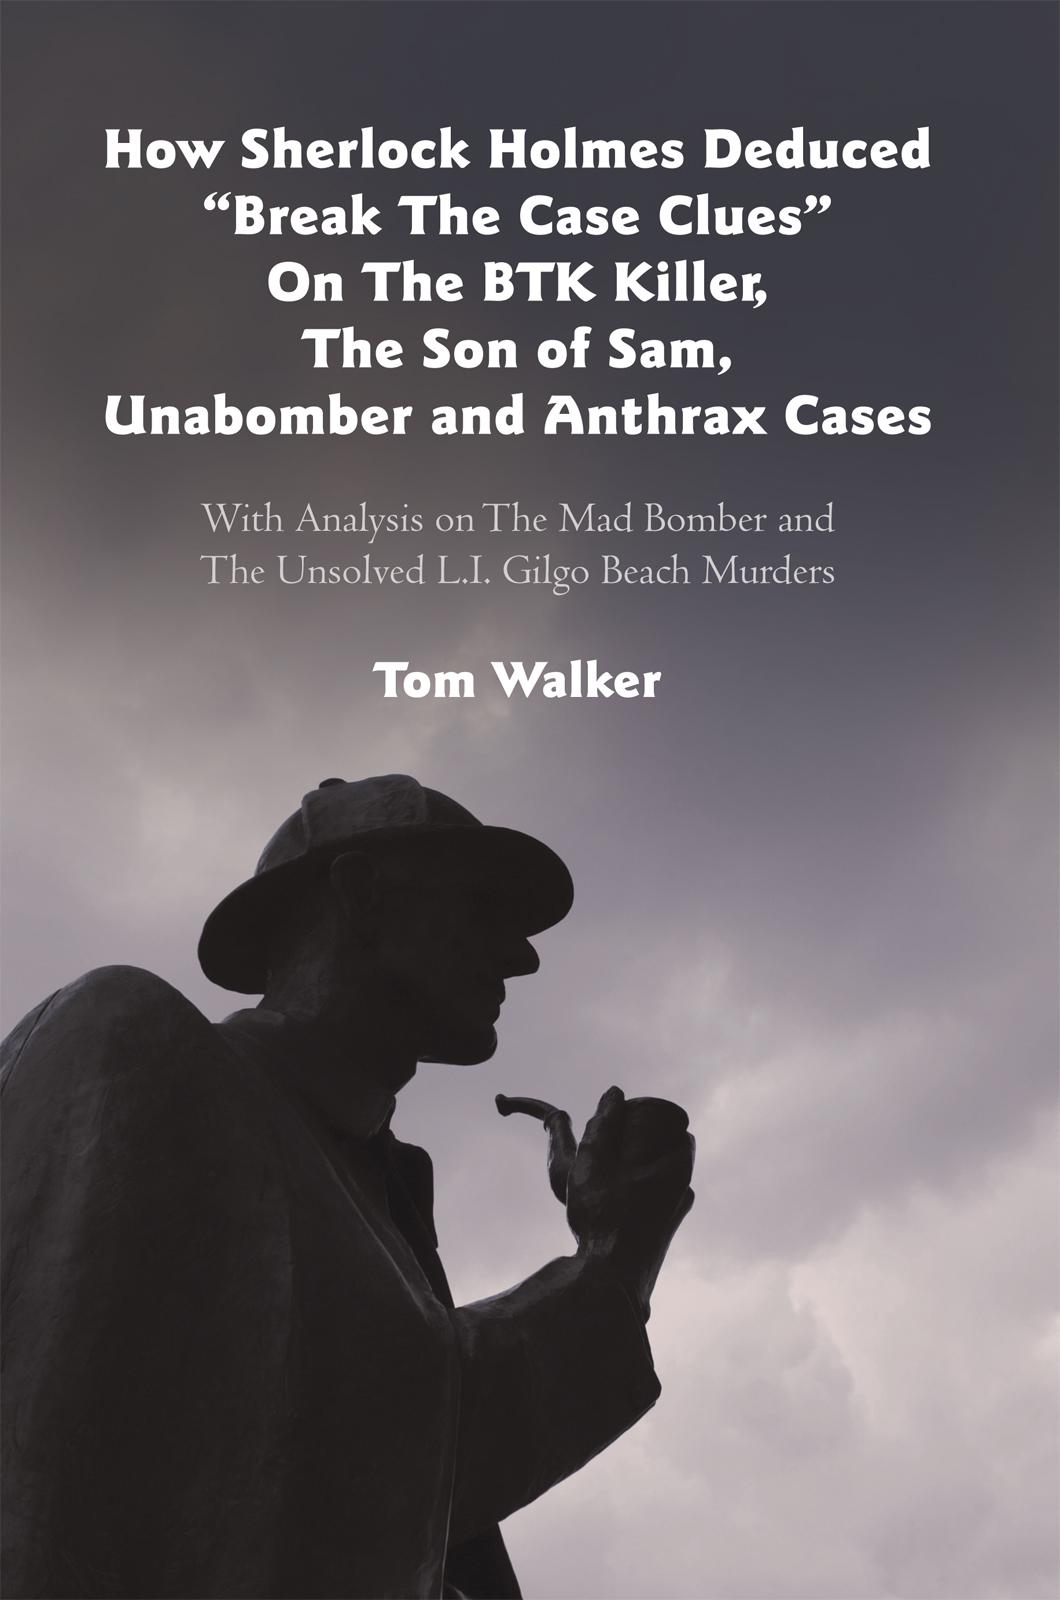 "How Sherlock Holmes Deduced ""Break The Case Clues"" On The BTK Killer, The Son of Sam, Unabomber and Anthrax Cases"